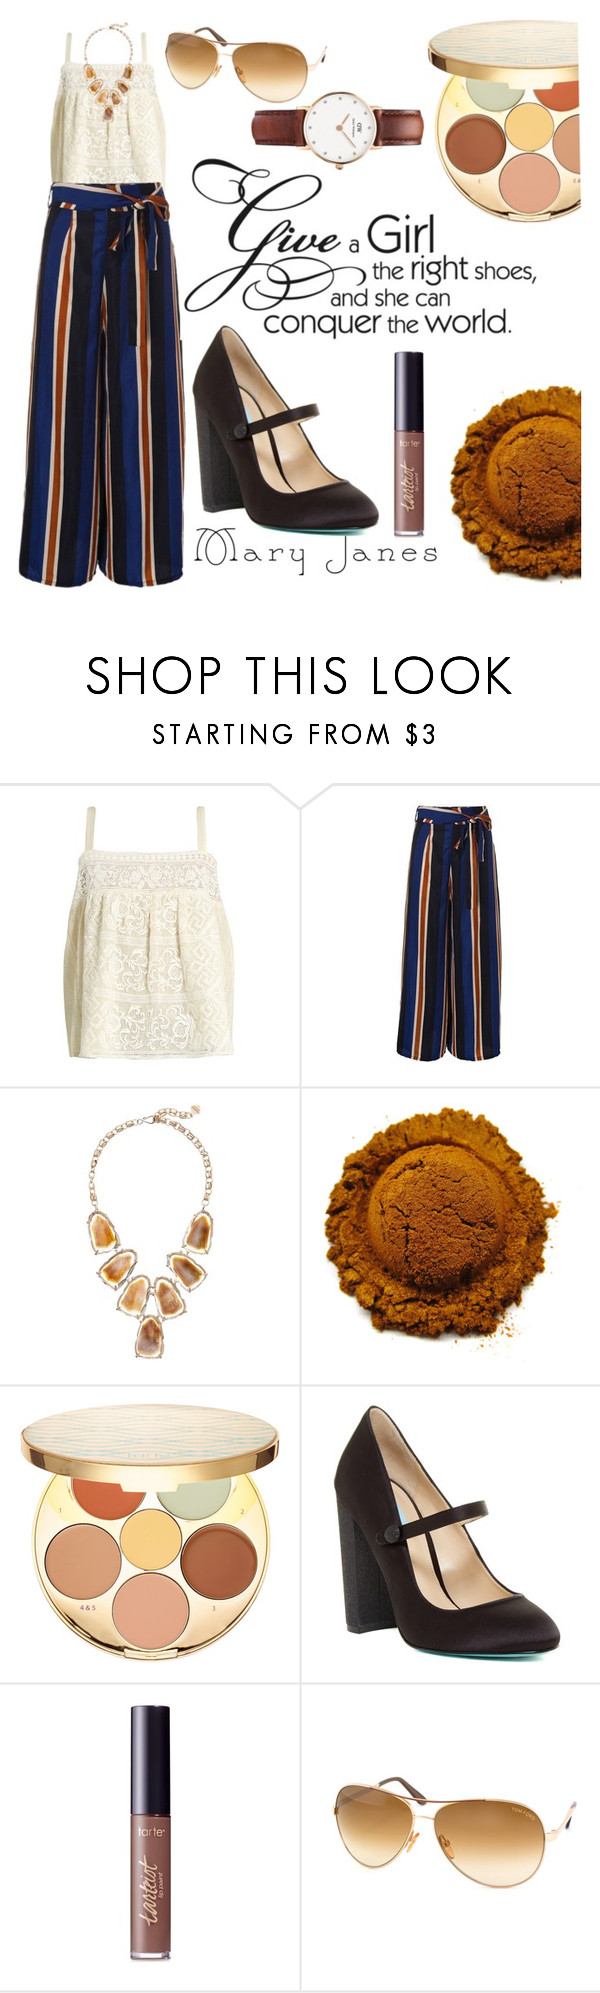 """""""Mary Janes"""" by an-open-mind ❤ liked on Polyvore featuring Sea, New York, Kendra Scott, tarte, Betsey Johnson, Tom Ford and Daniel Wellington"""